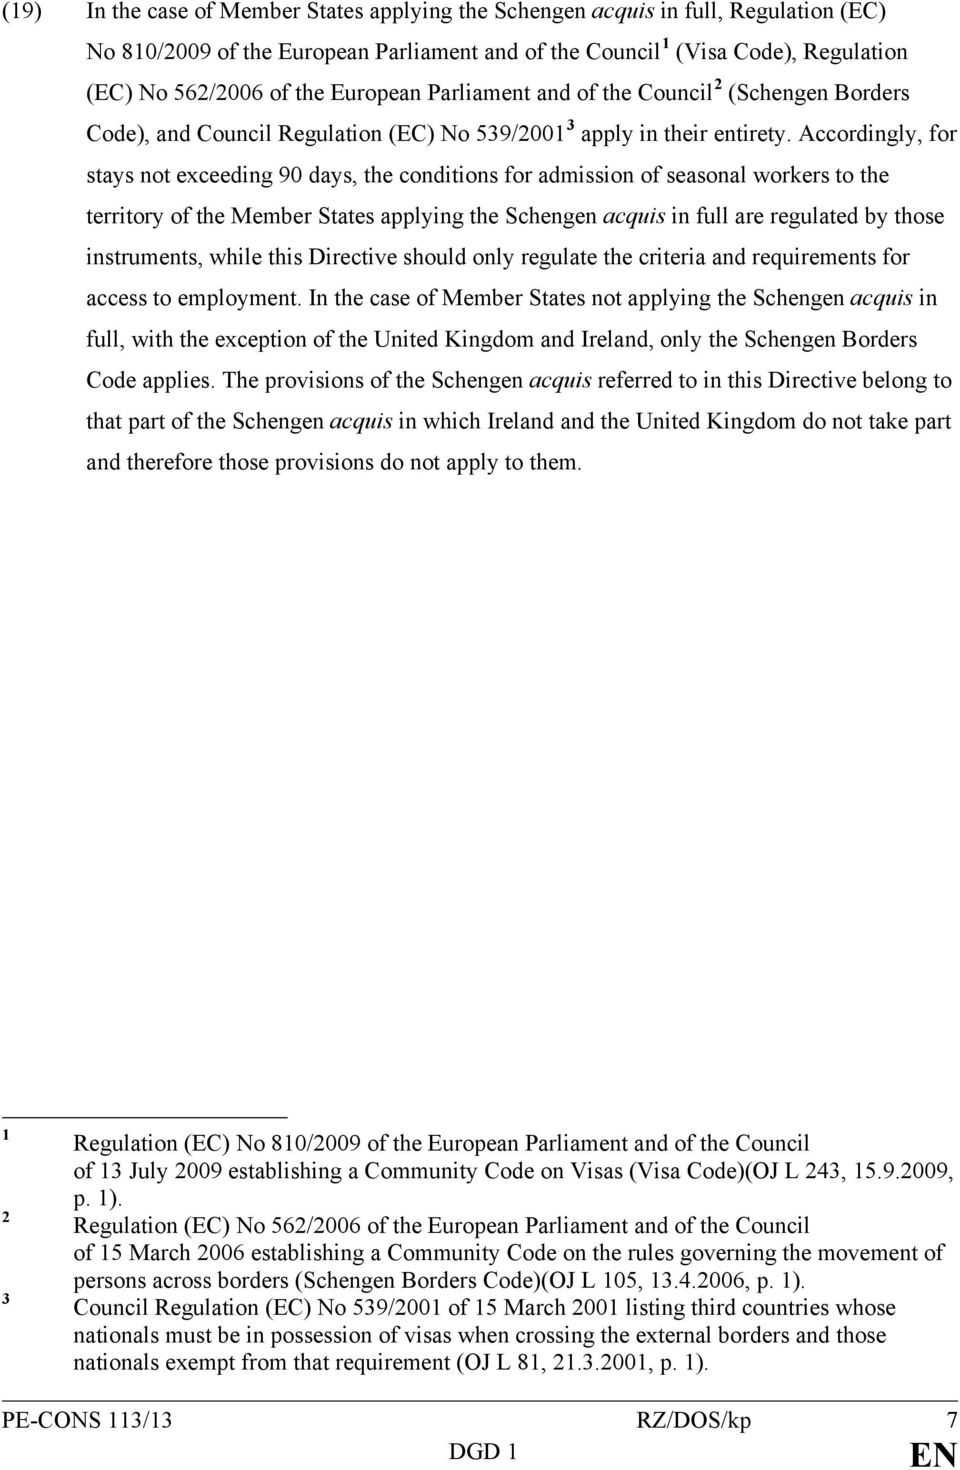 Accordingly, for stays not exceeding 90 days, the conditions for admission of seasonal workers to the territory of the Member States applying the Schengen acquis in full are regulated by those